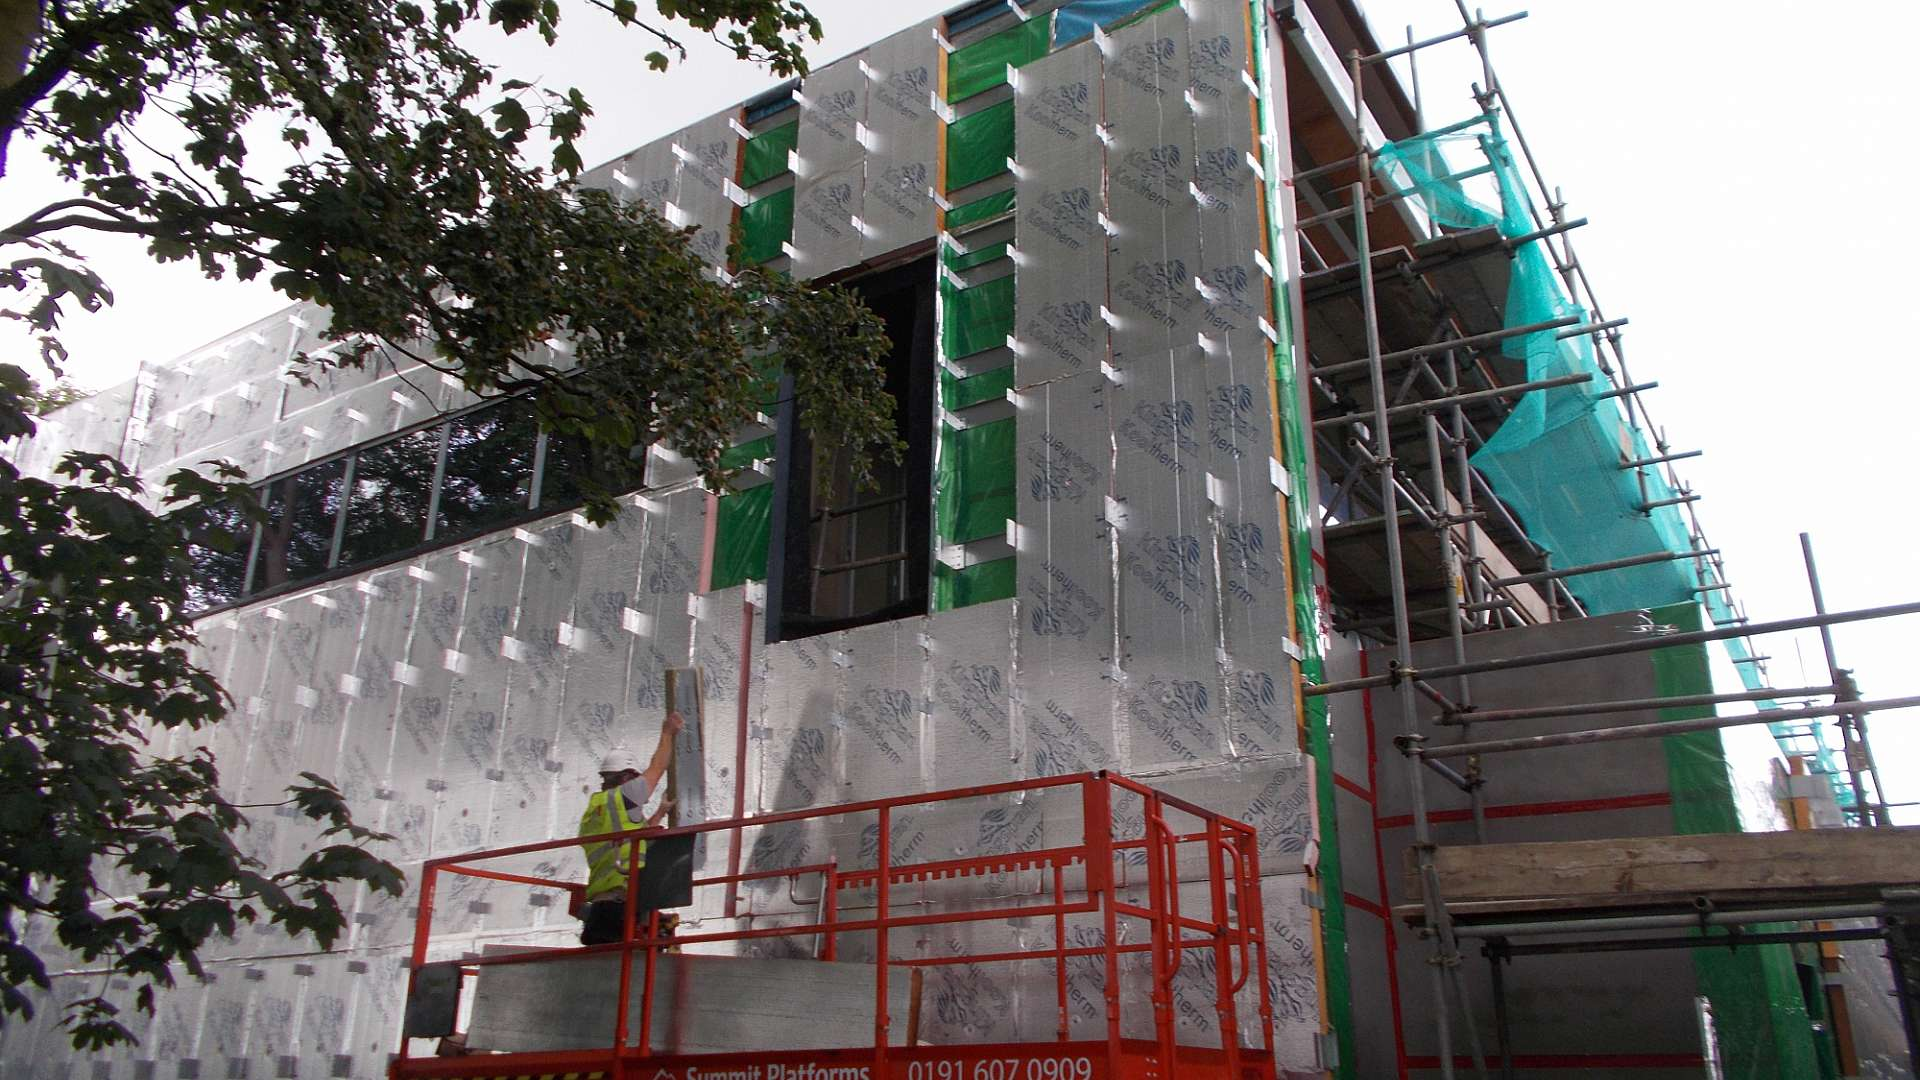 Cladding is fitted to the healthcare photonics facility